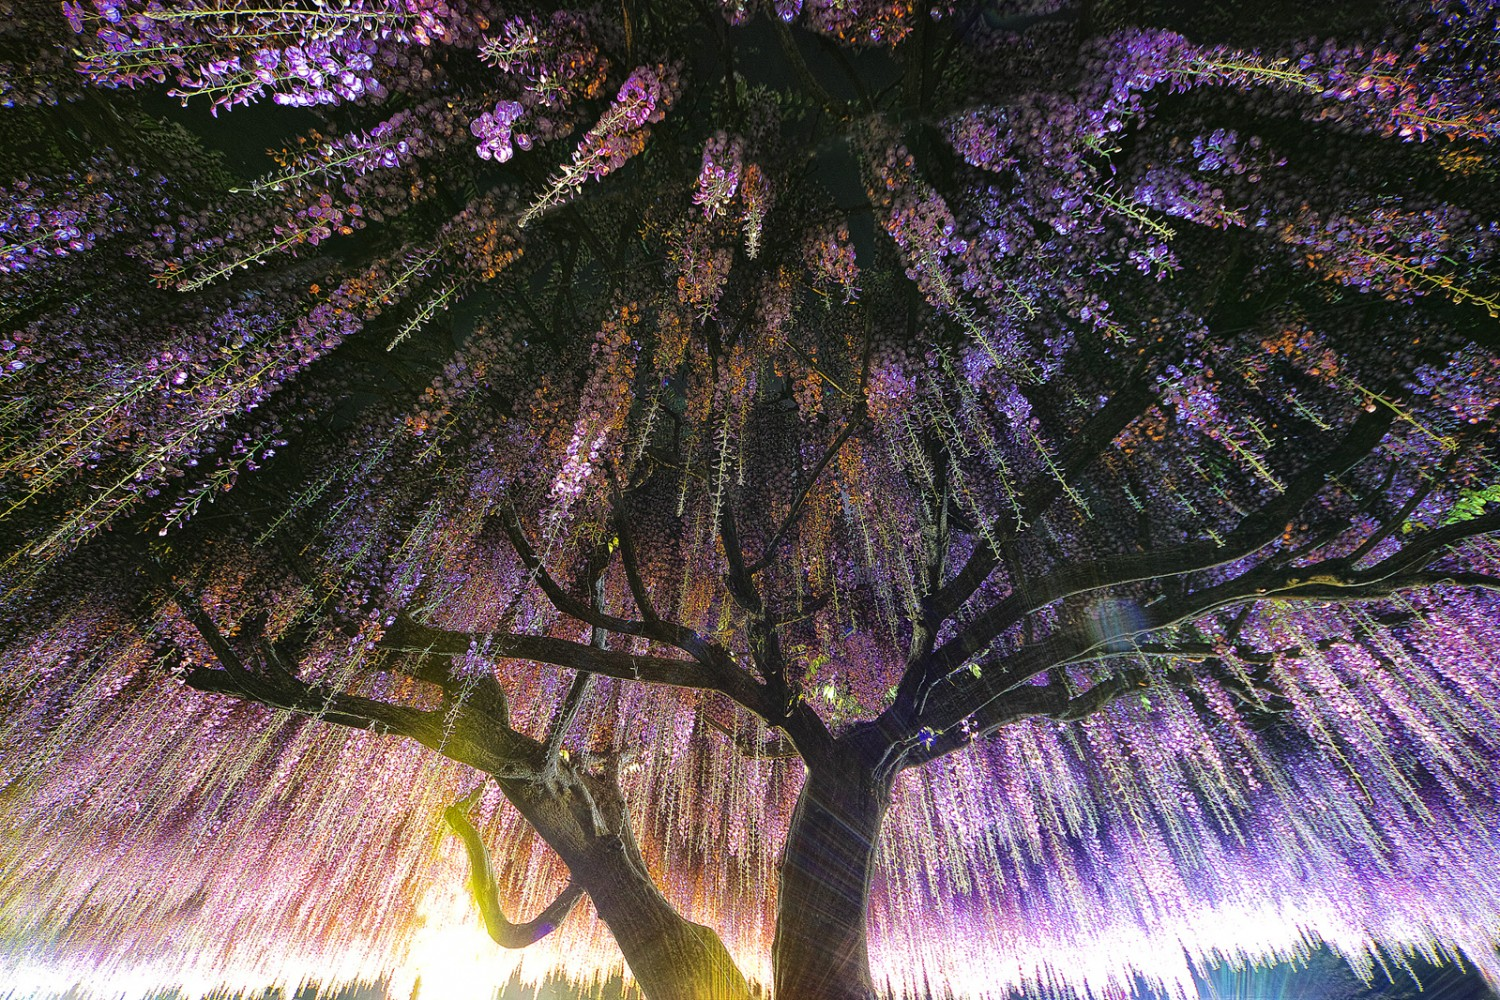 30 Striking Photos of One of the Most Beautiful Trees on Earth